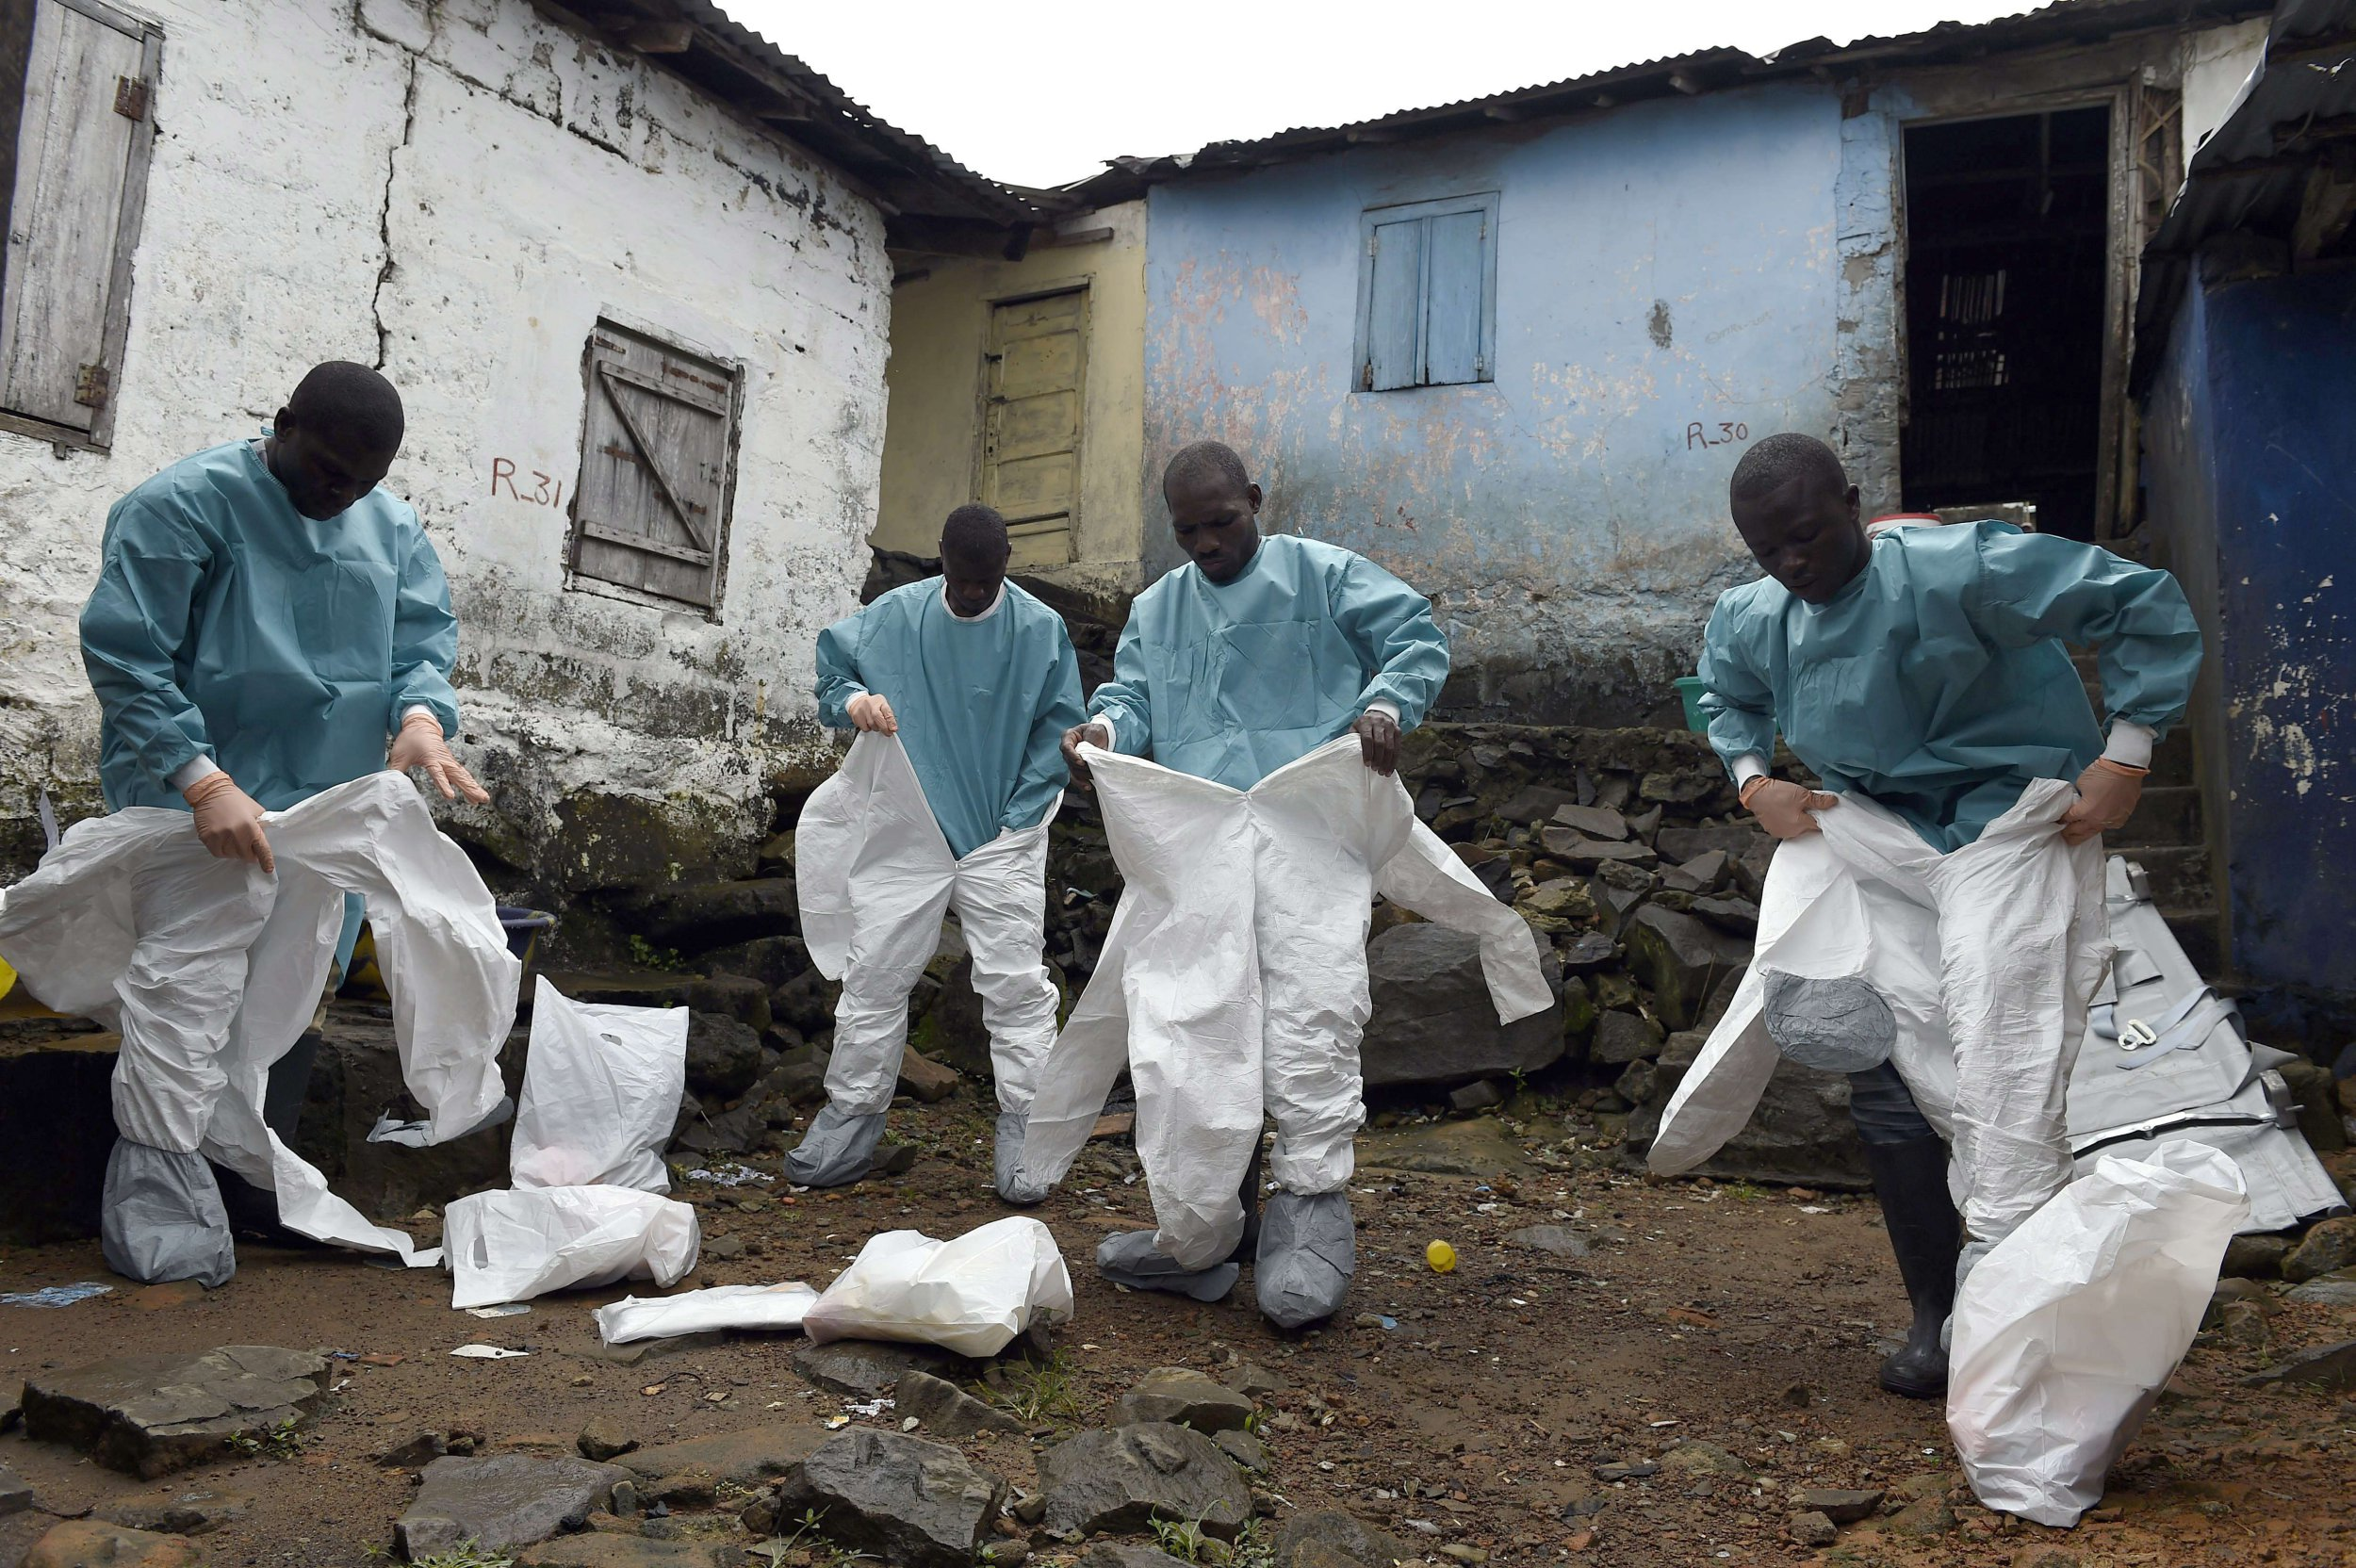 -- AFP PICTURES OF THE YEAR 2014 -- Medical staff members of the Croix Rouge NGO put on protective suits before collecting the corpse of a victim of Ebola, in Monrovia, on September 29, 2014. Of the four west African nations affected by the Ebola outbreak, Liberia has been hit the hardest, with 3,458 people infected -- more than half of the total number of cases. Of those, 1,830 have died, according to a WHO count released on September 27. AFP PHOTO / PASCAL GUYOTPASCAL GUYOT/AFP/Getty Images